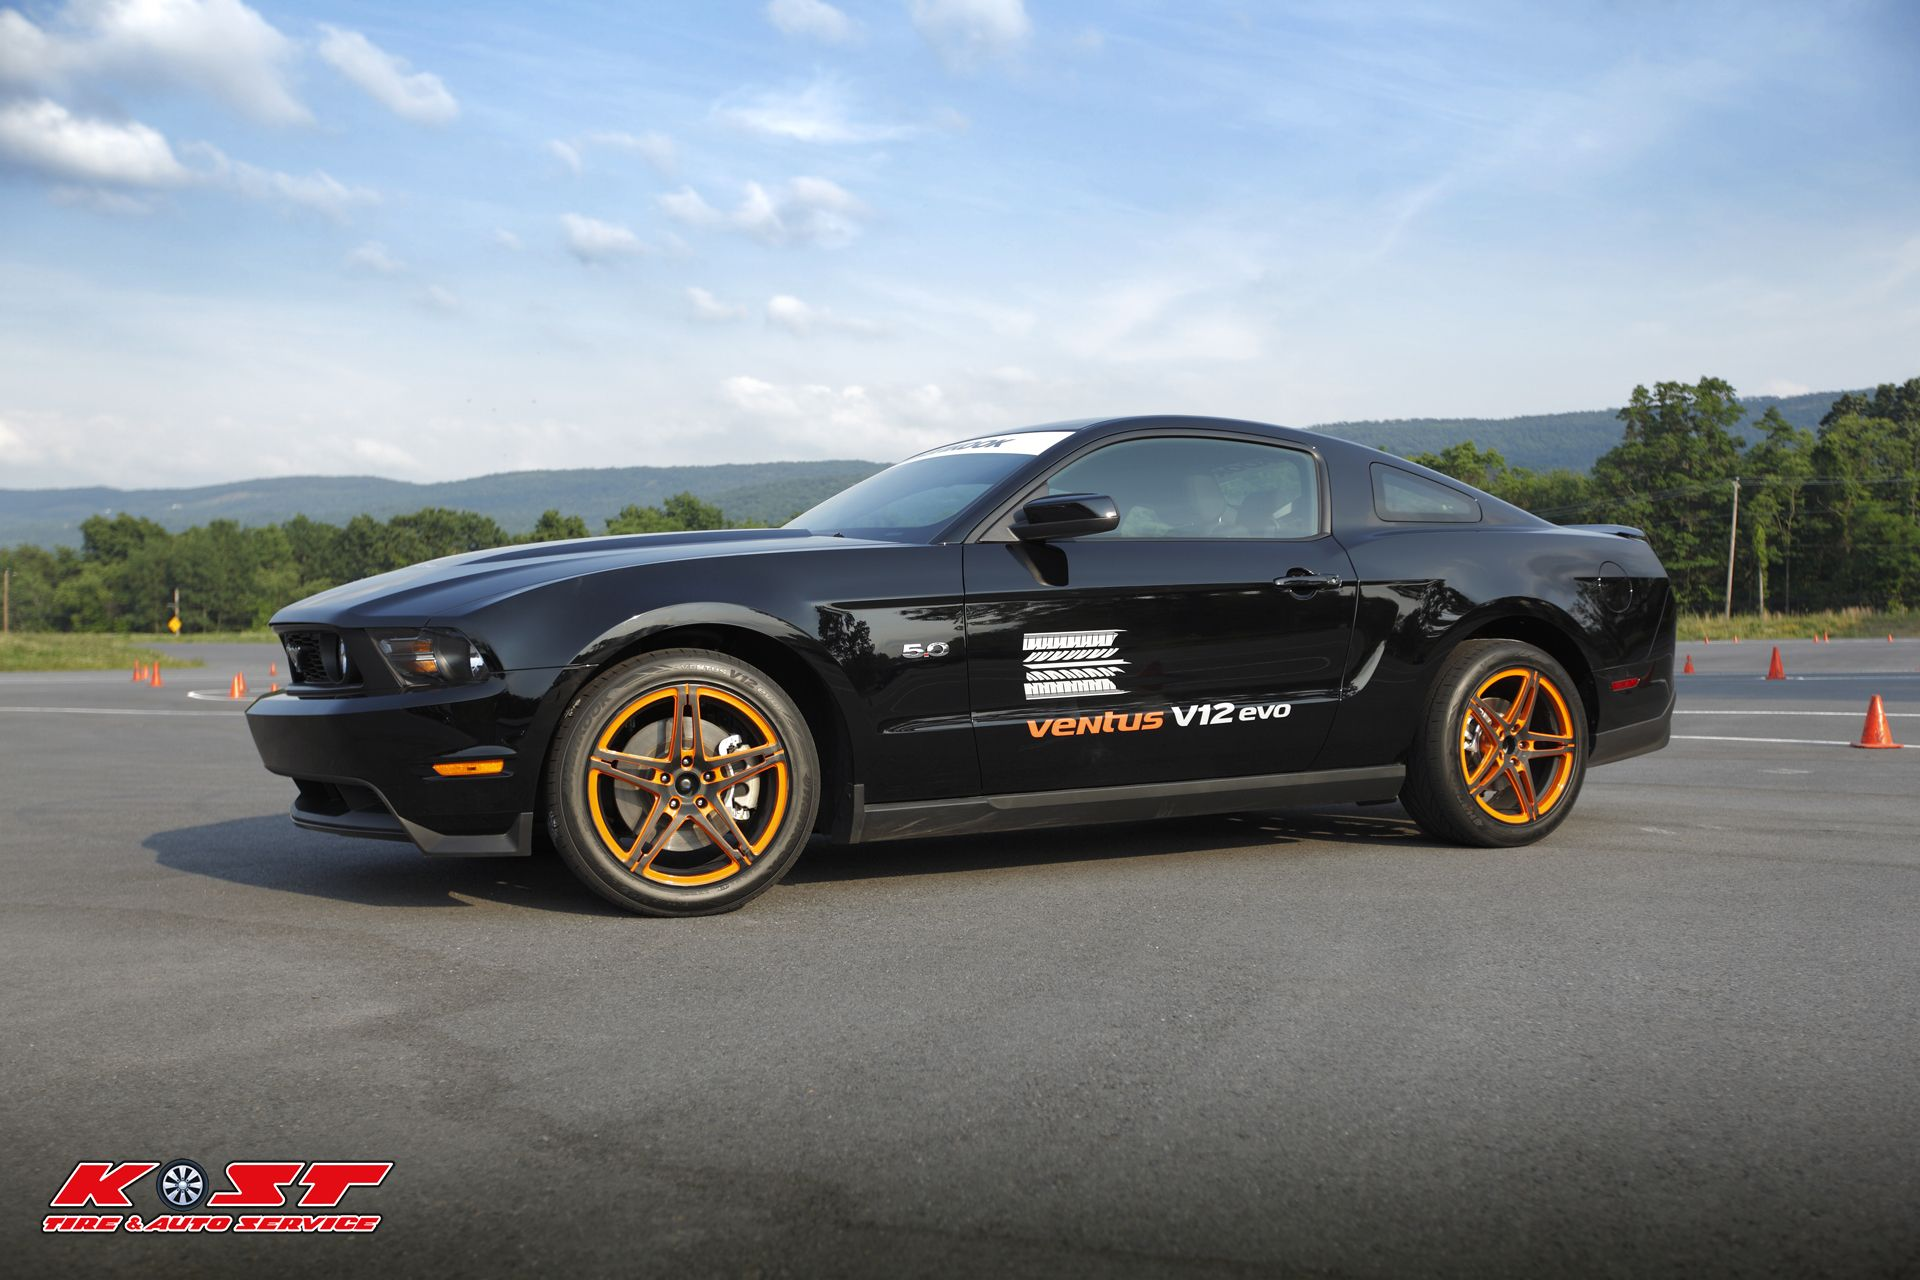 Side view of Hankook Tire s Ford Mustang GT with Venus V12 EVO tires